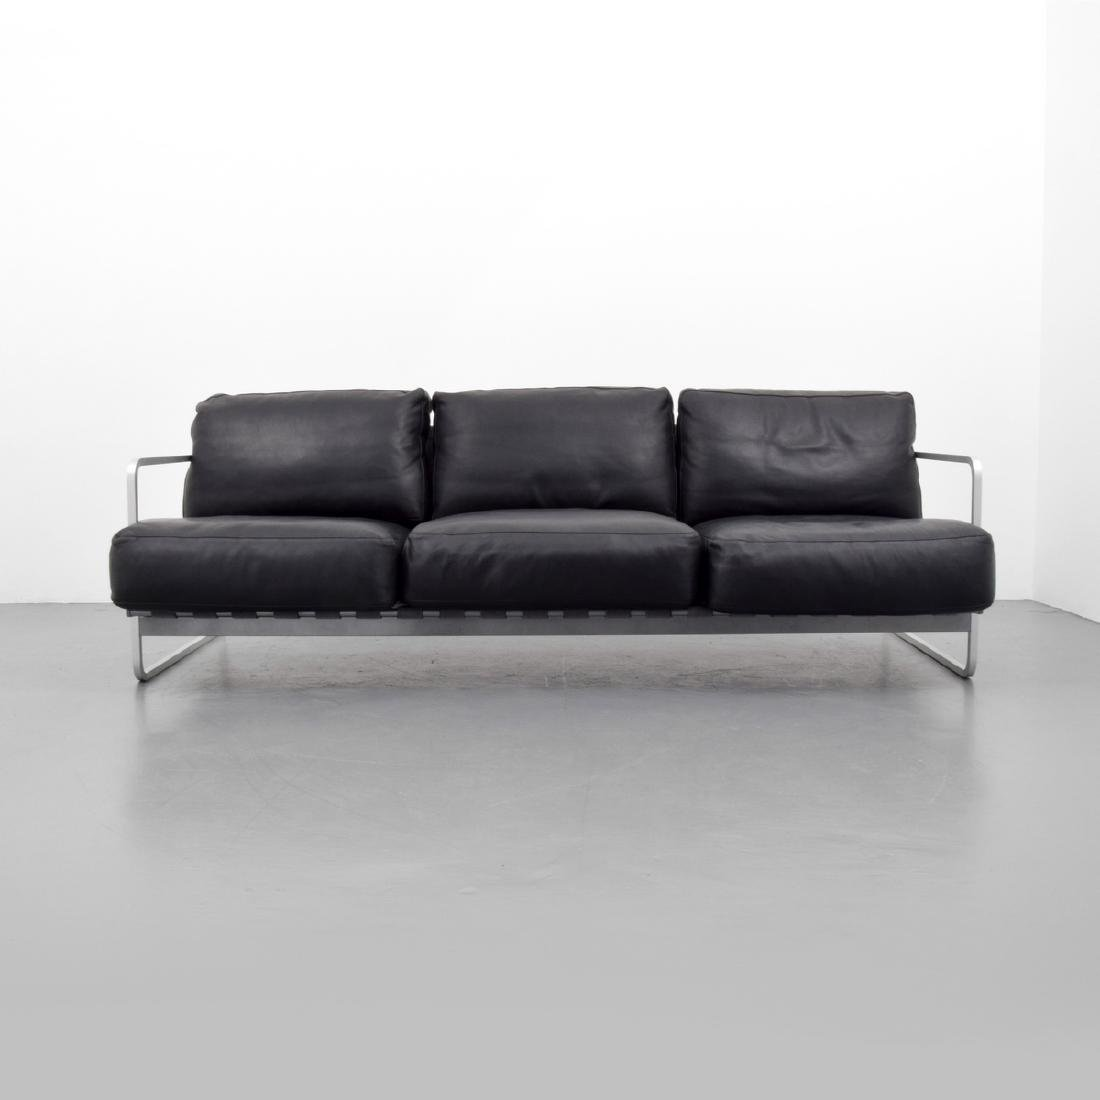 Haberli & Marchand ZURIGO Leather Sofa